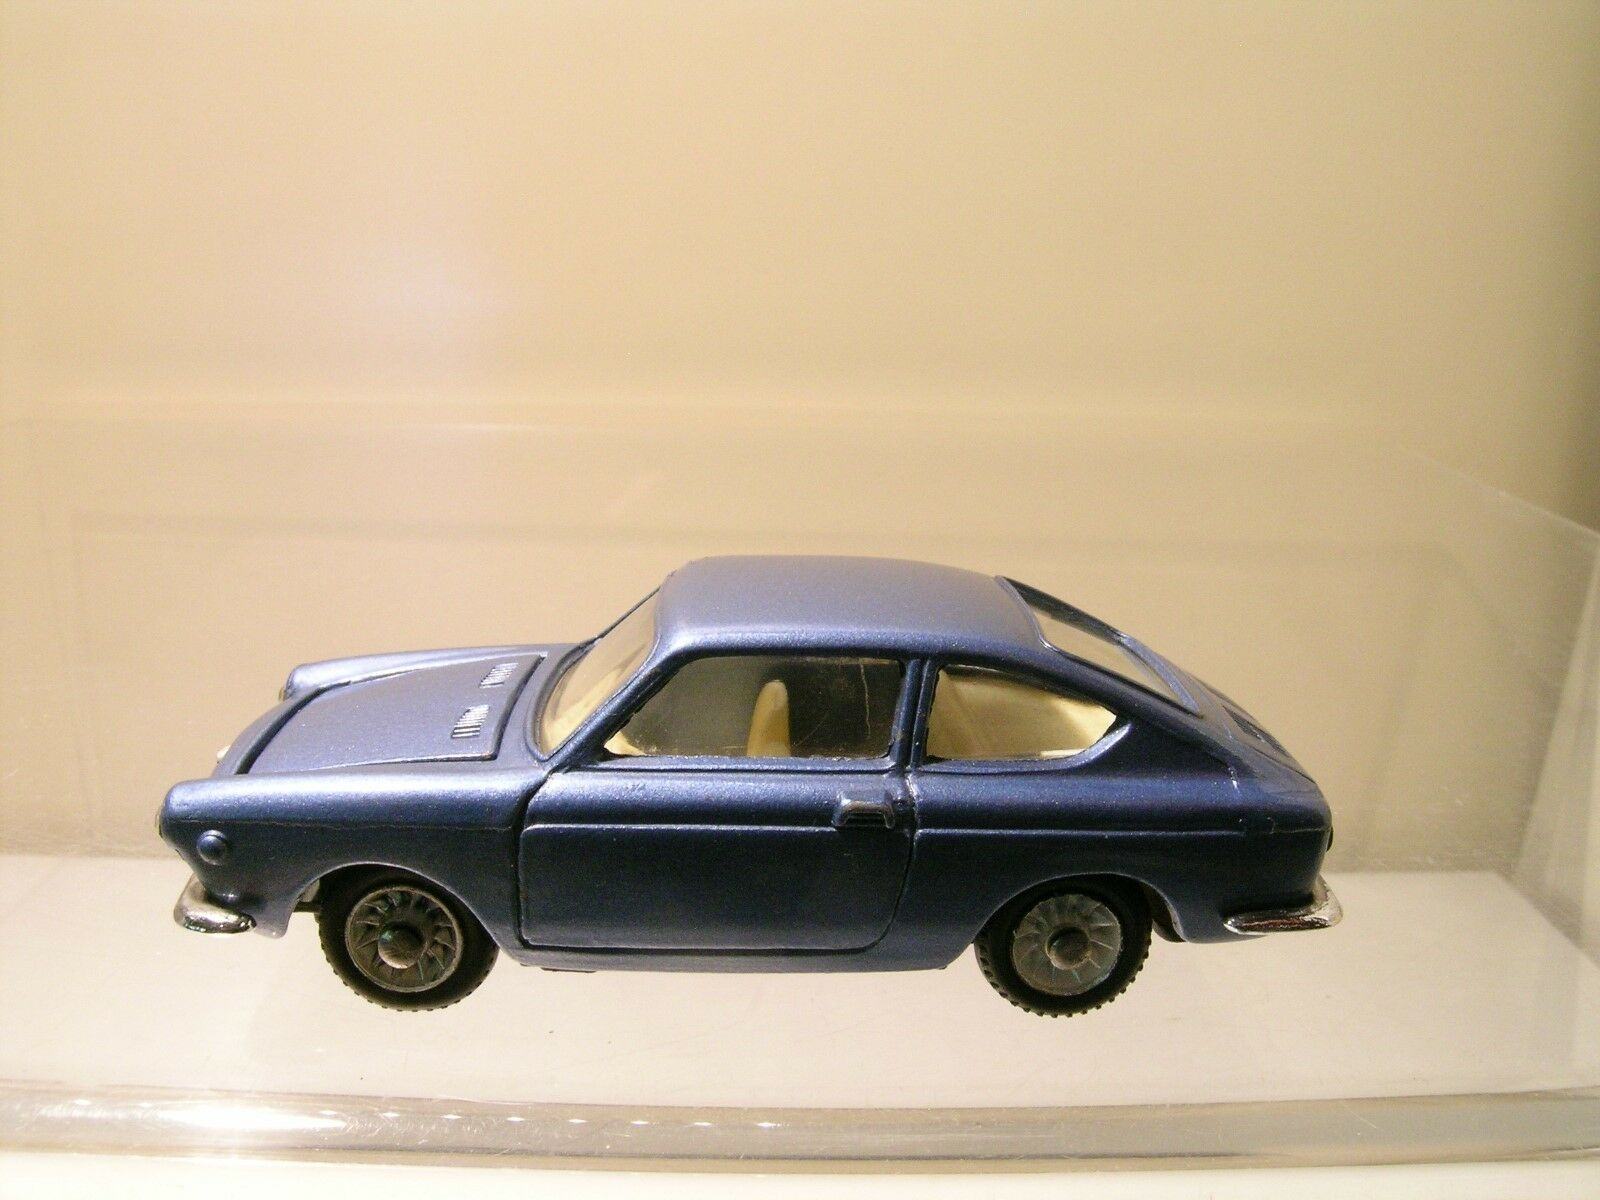 MERCURY ITALY No.44 No.44 No.44 FIAT 850 COUPE METALLIC blueE NEAR-MINT SCALE 1 43 de9e15